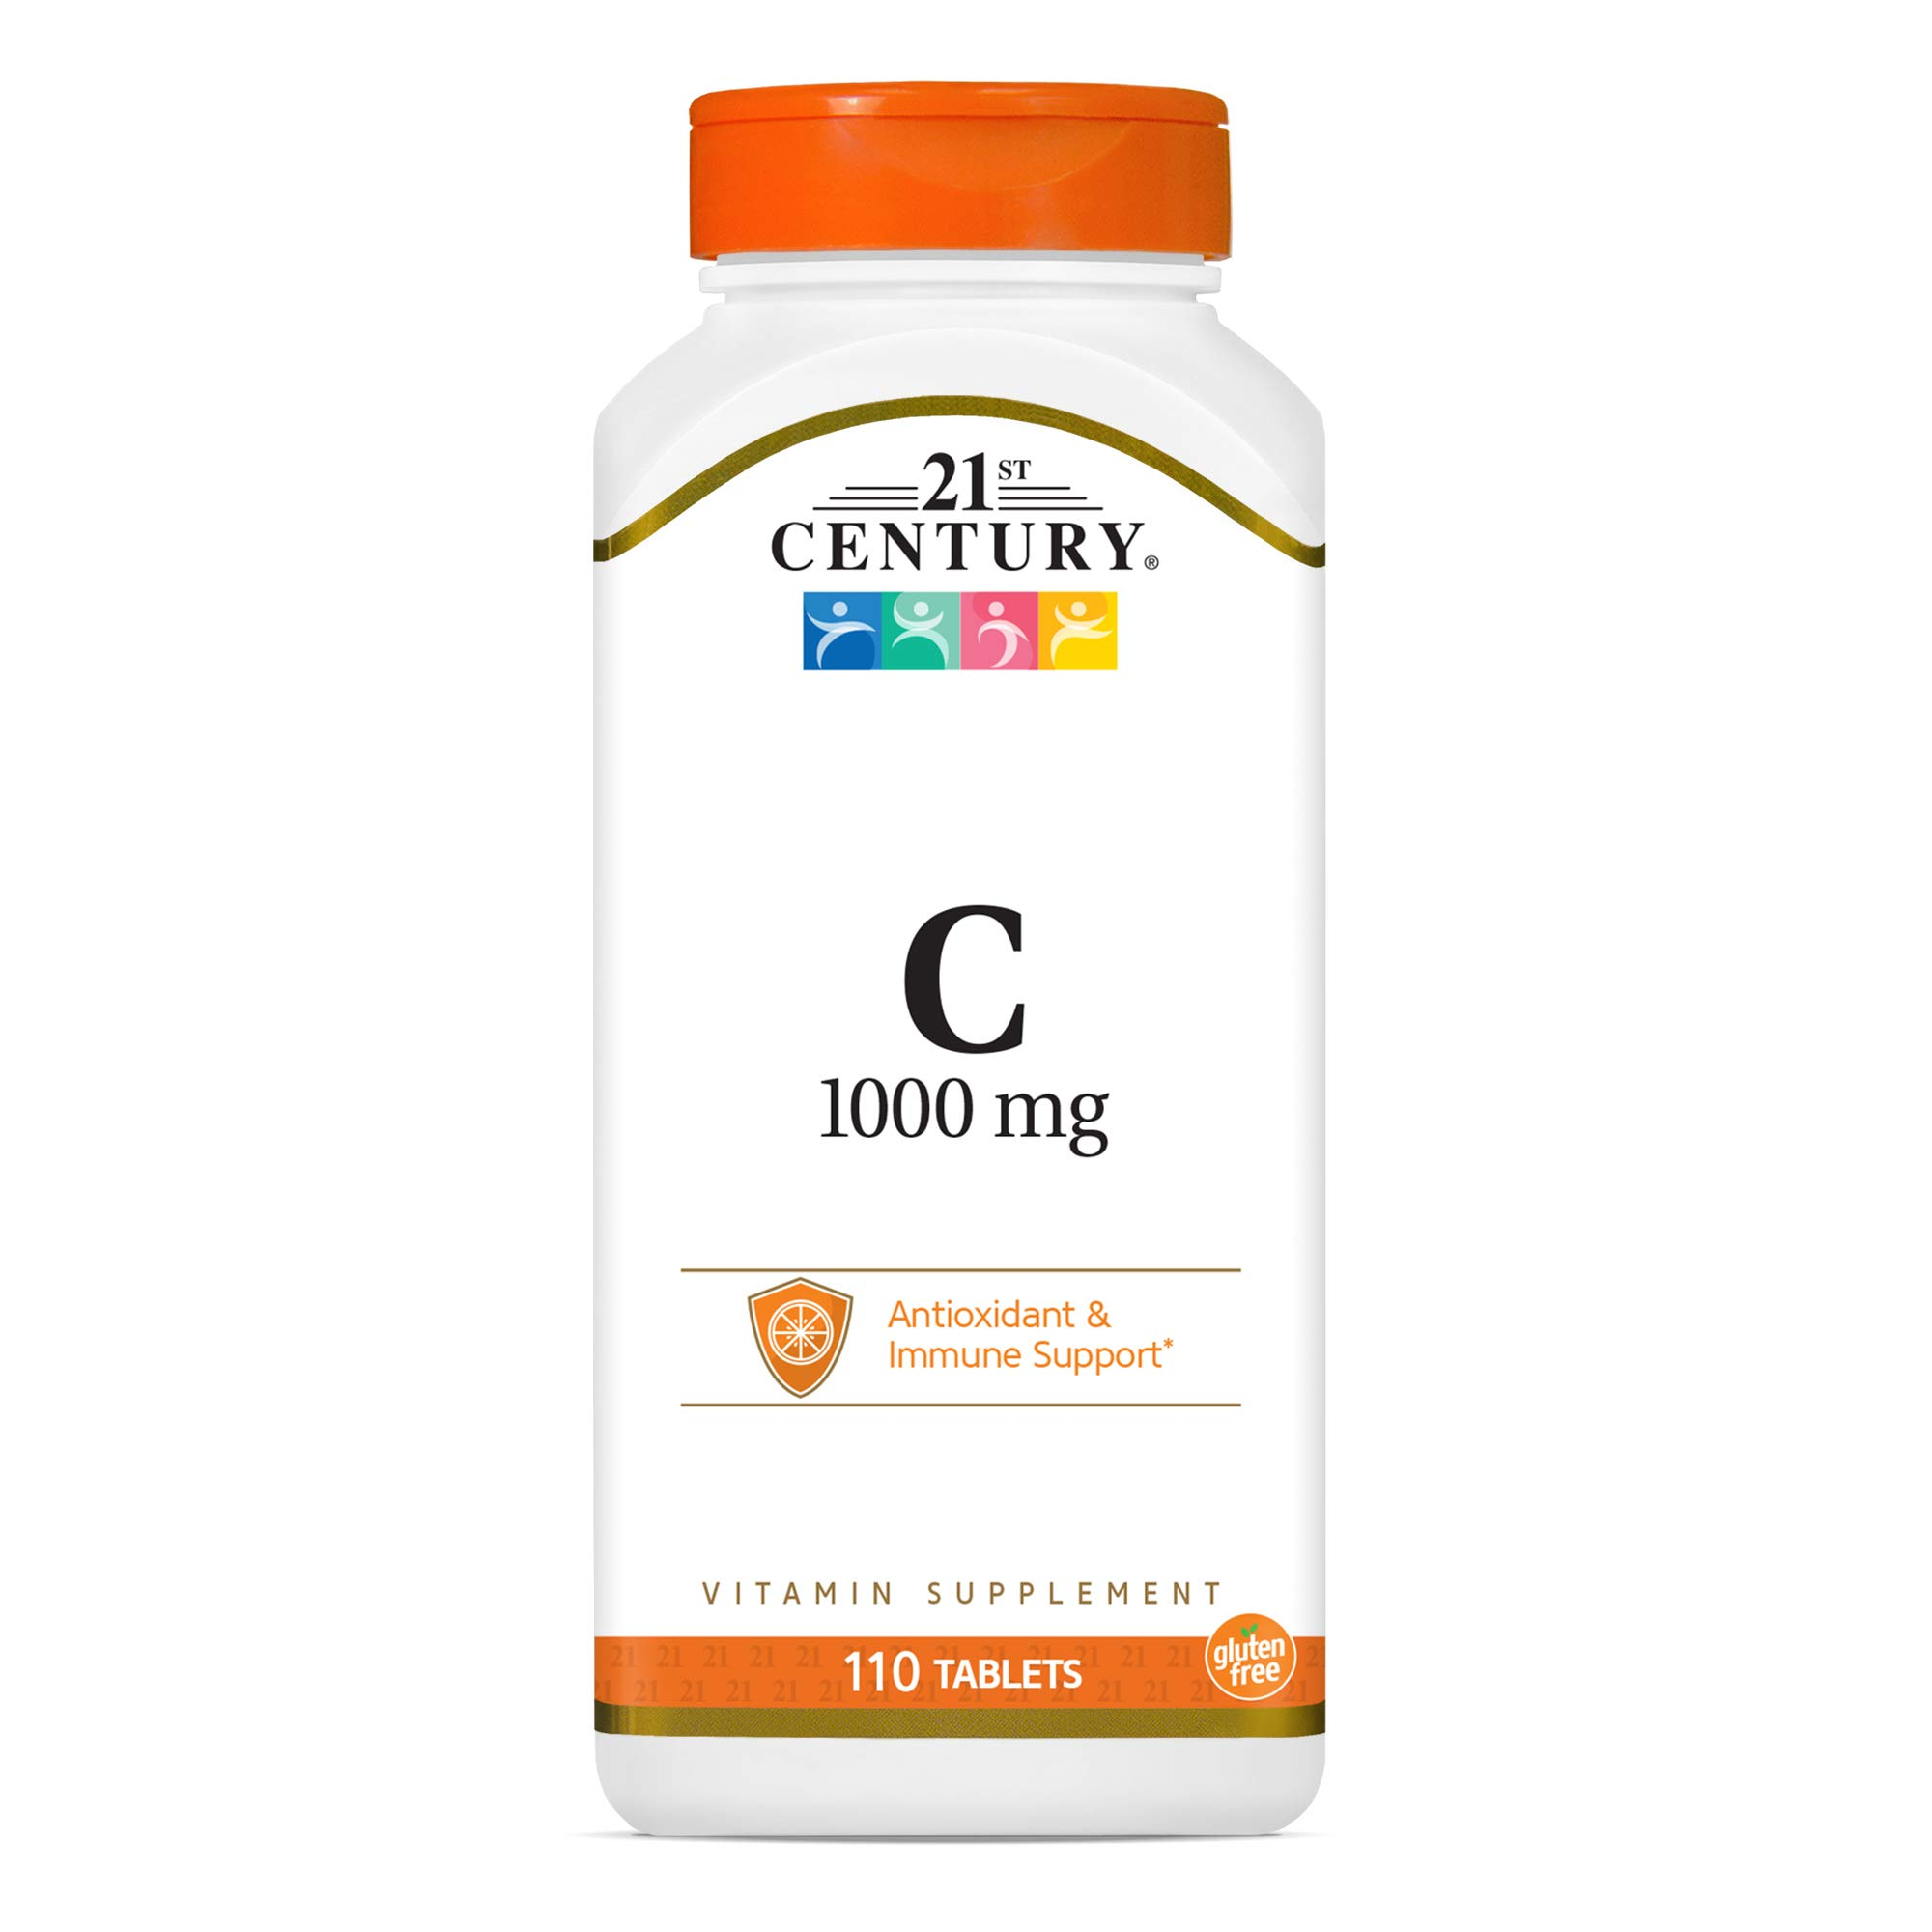 21st Century C 1000 mg Tablets 110 Count